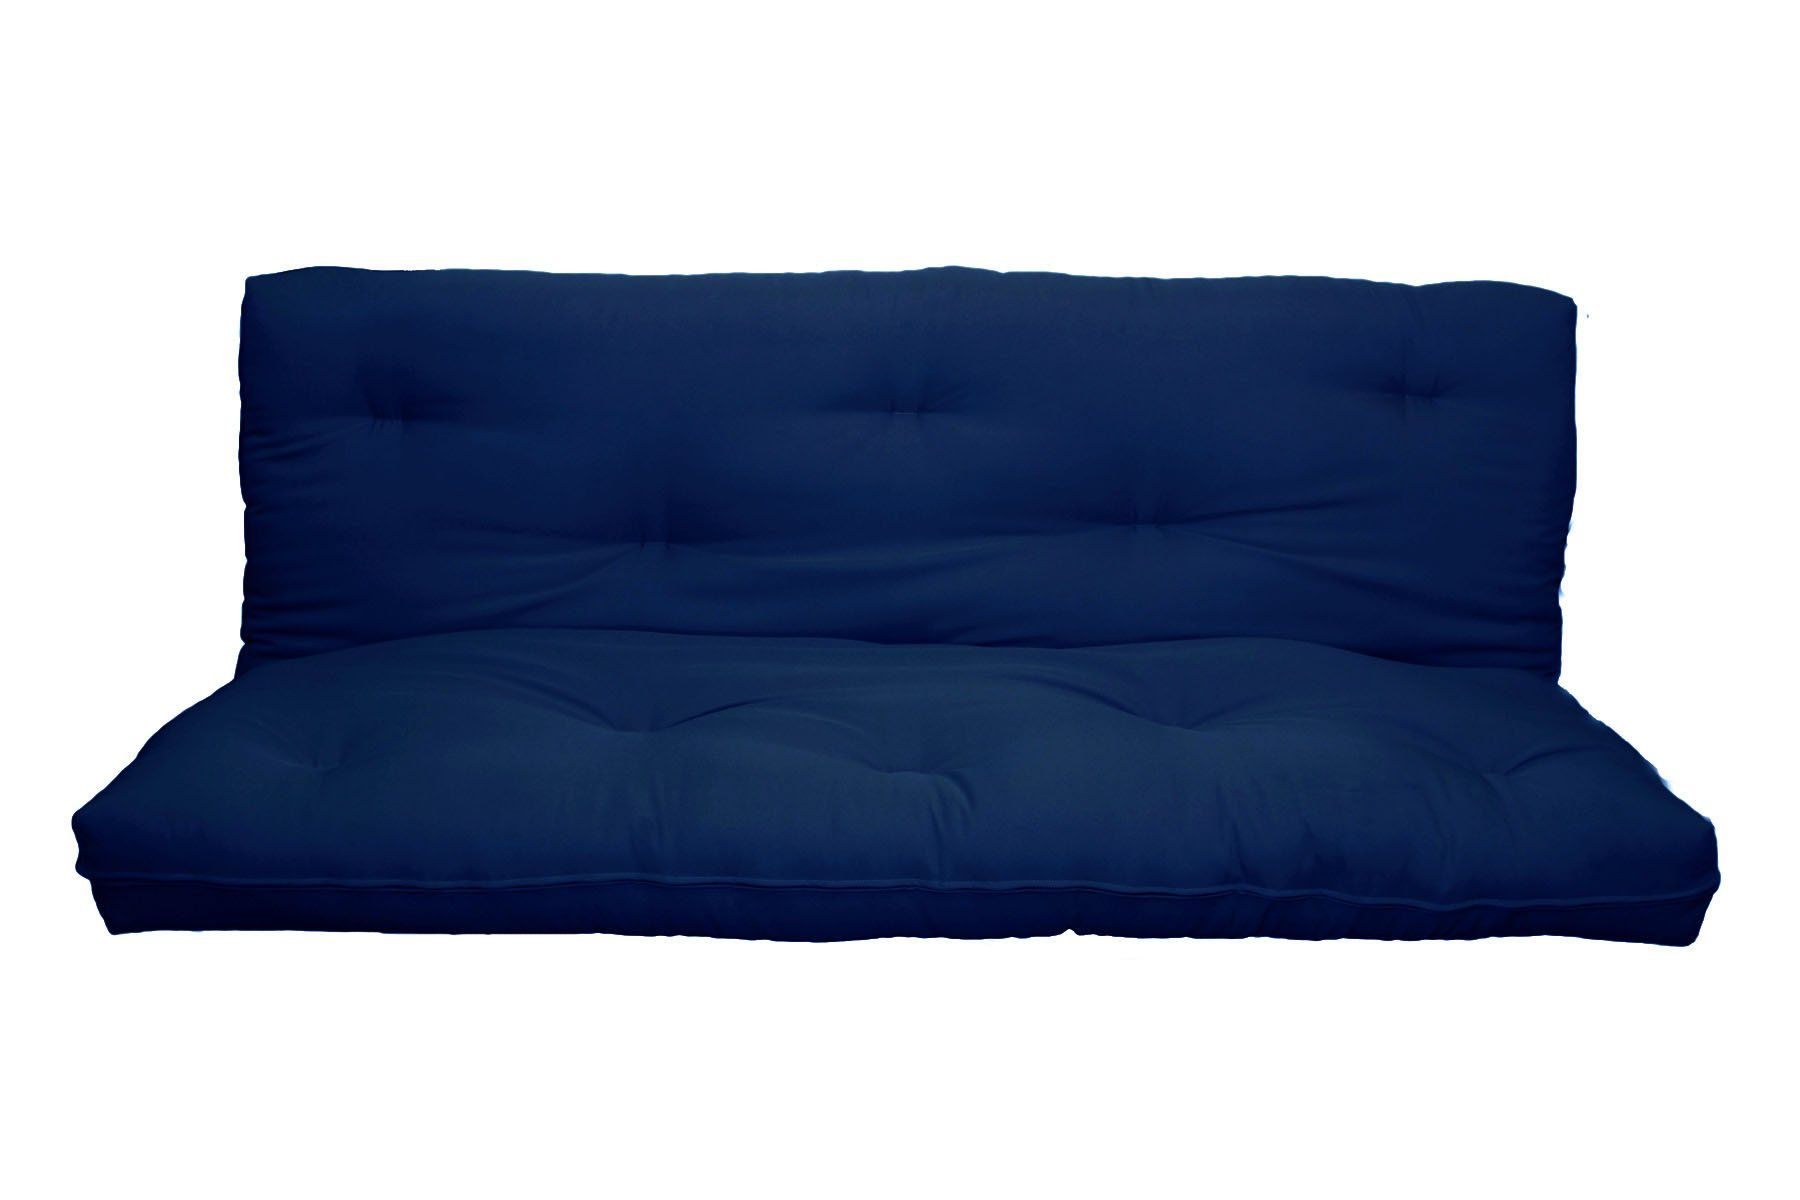 Milton Greens Stars 8inch Replacement Innerspring Futon Pad Full Navy For More Information Visit